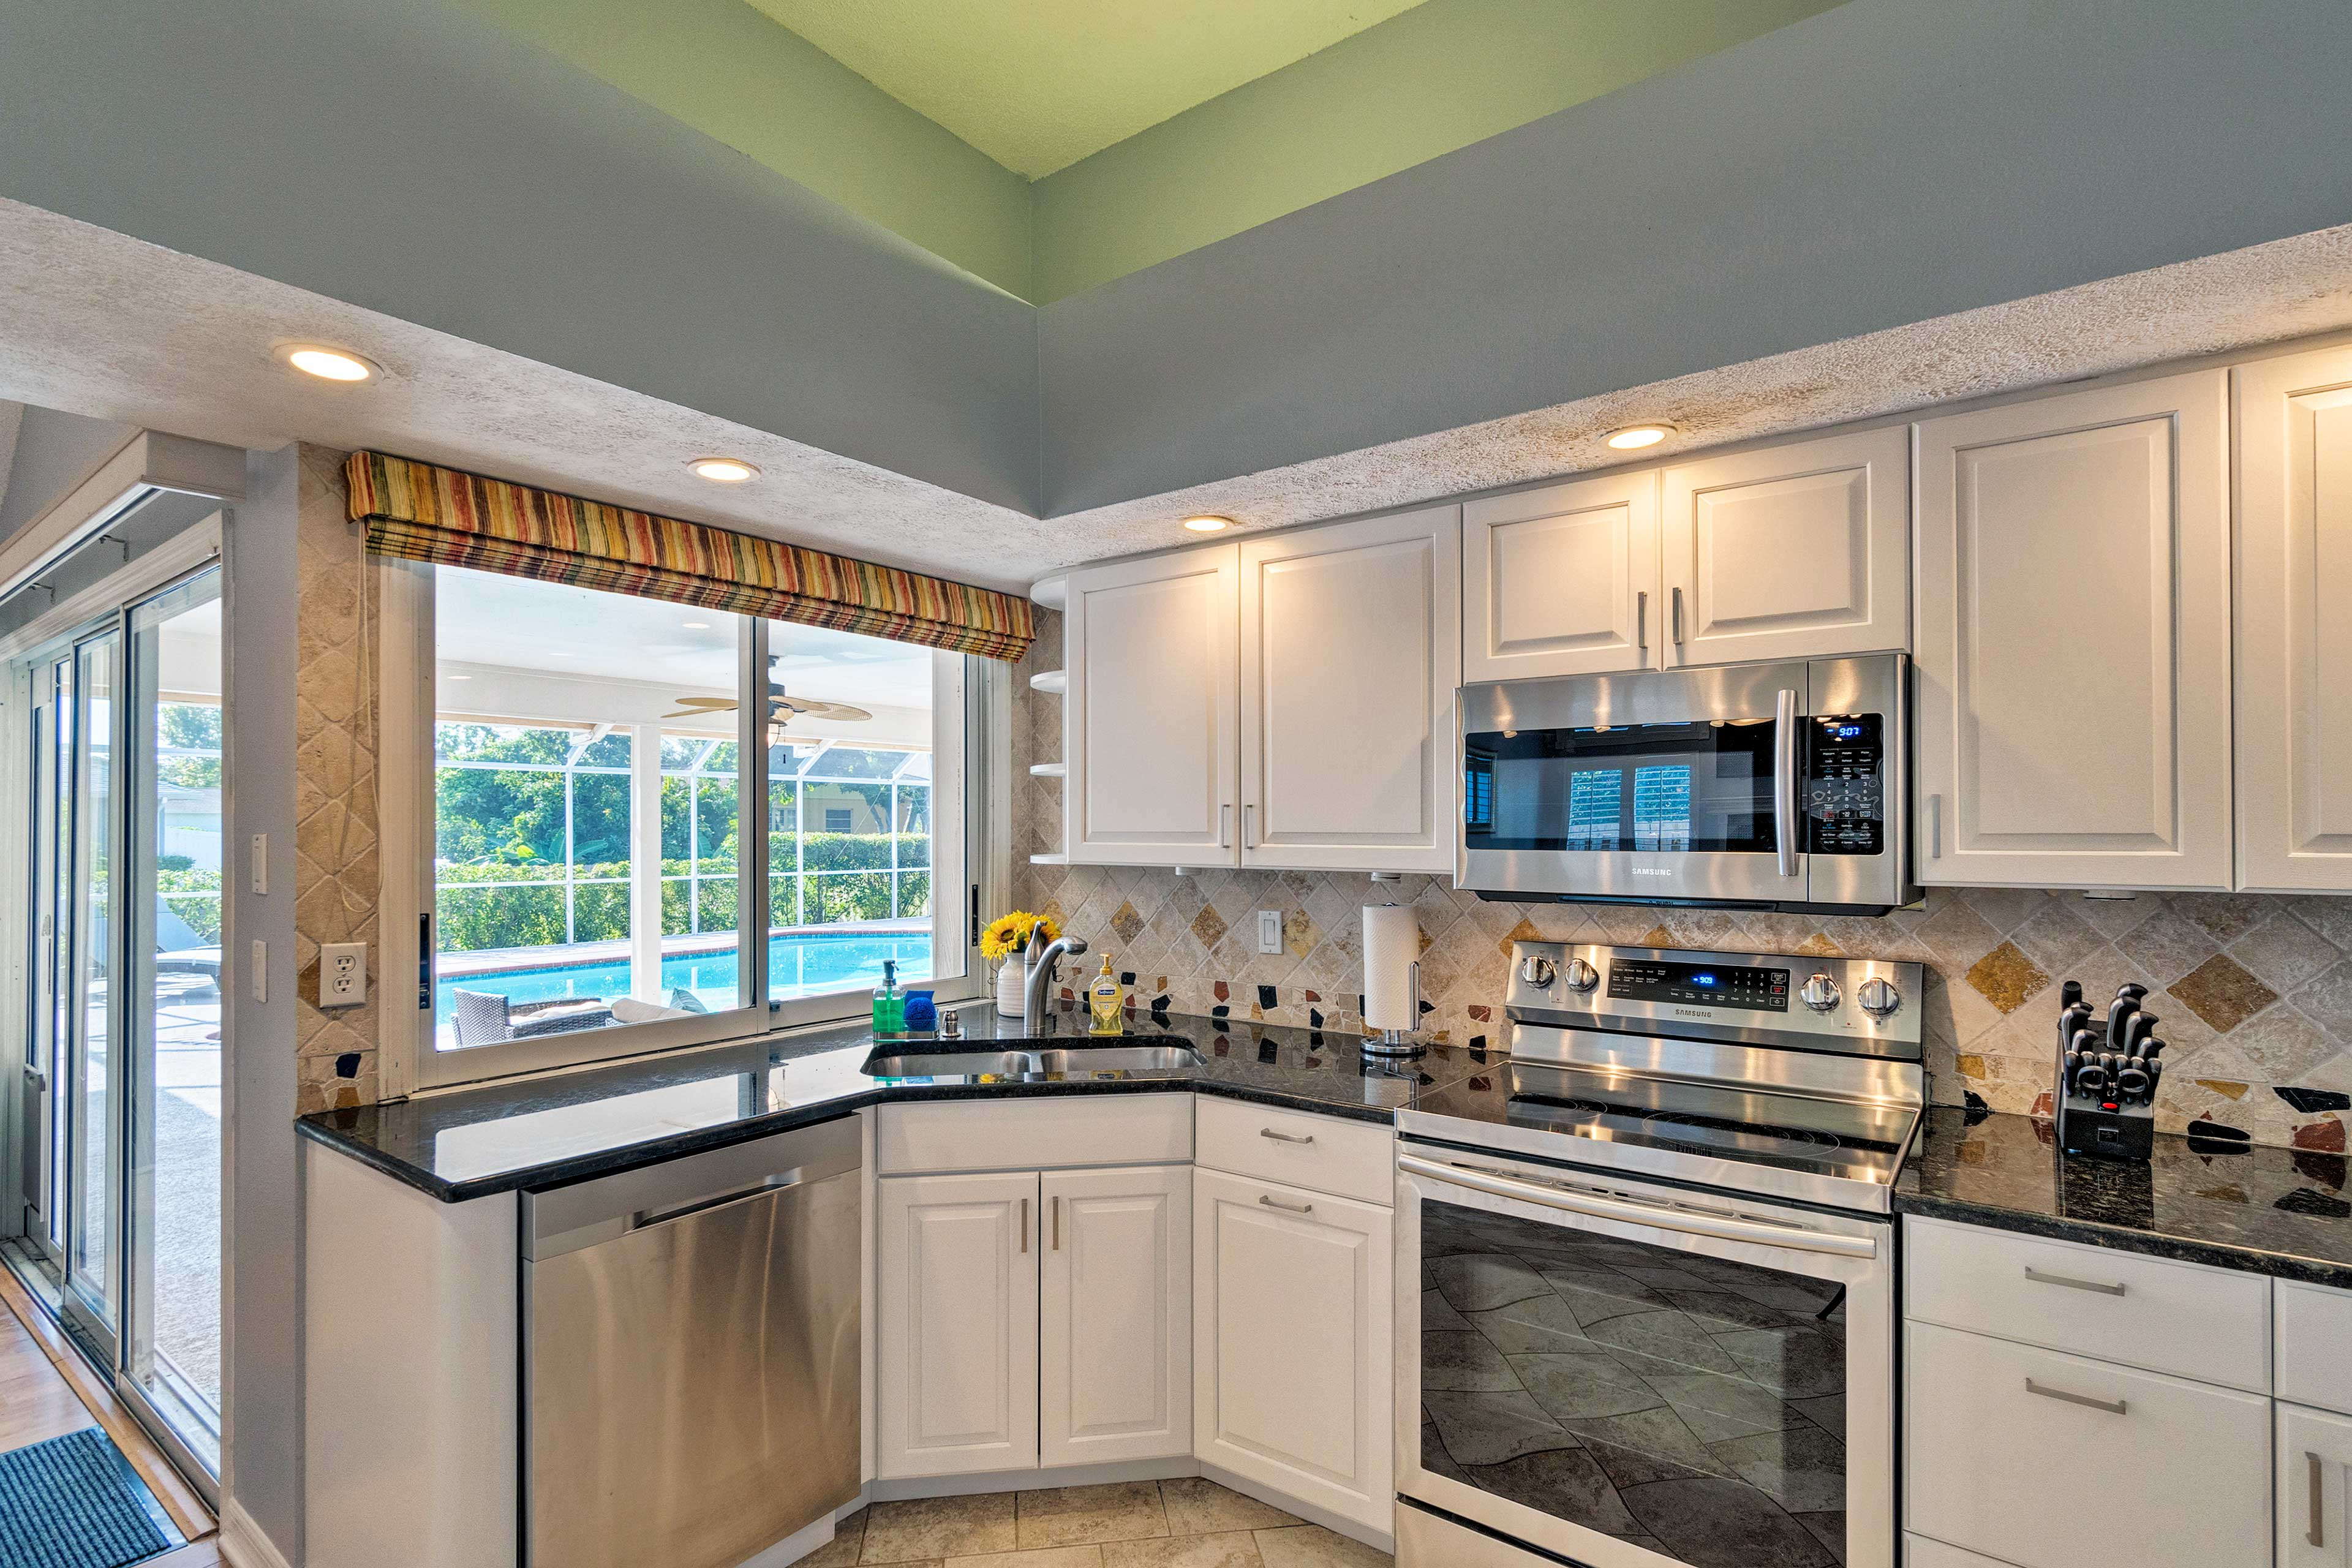 This kitchen has all of the cooking essentials of home.